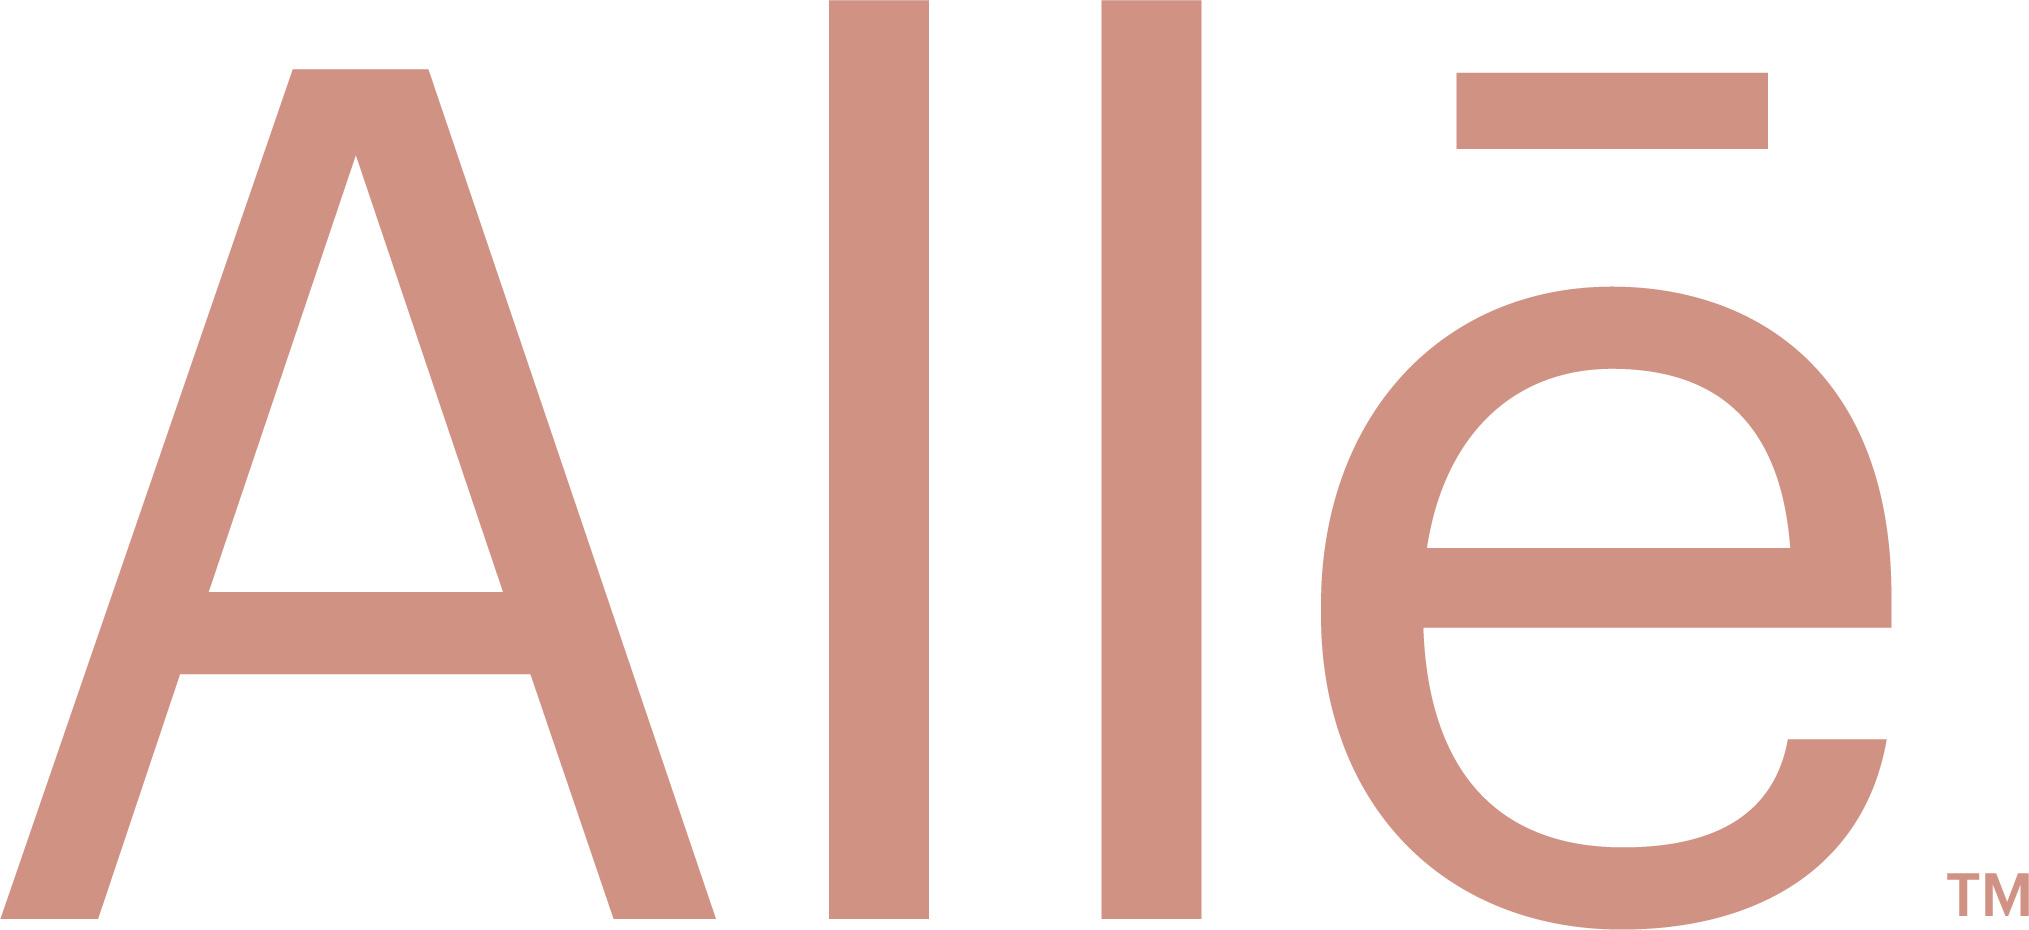 AestheticsWire Exclusive: Meet Allē, Allergan's Upgraded Patient Loyalty Program image